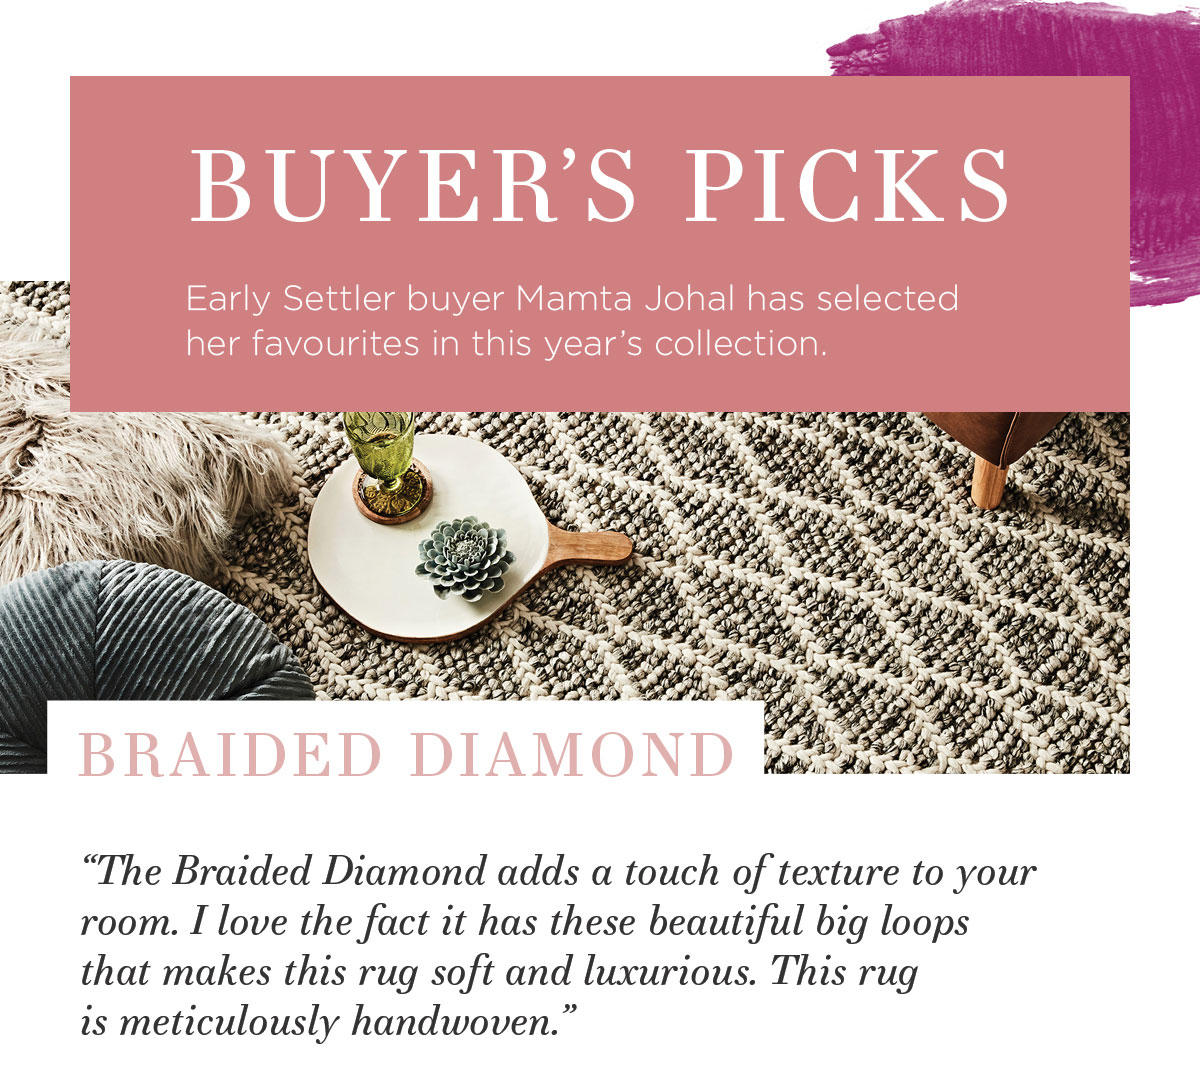 """2021 Rug Collection: Early Settler buyer Mamta Johal has selected her favourites in this year's collection. """"The Braided Diamond adds a touch of texture to your room. I love the fact it has these beautiful big loops that makes this rug soft and luxurious. This rug is handwoven."""""""